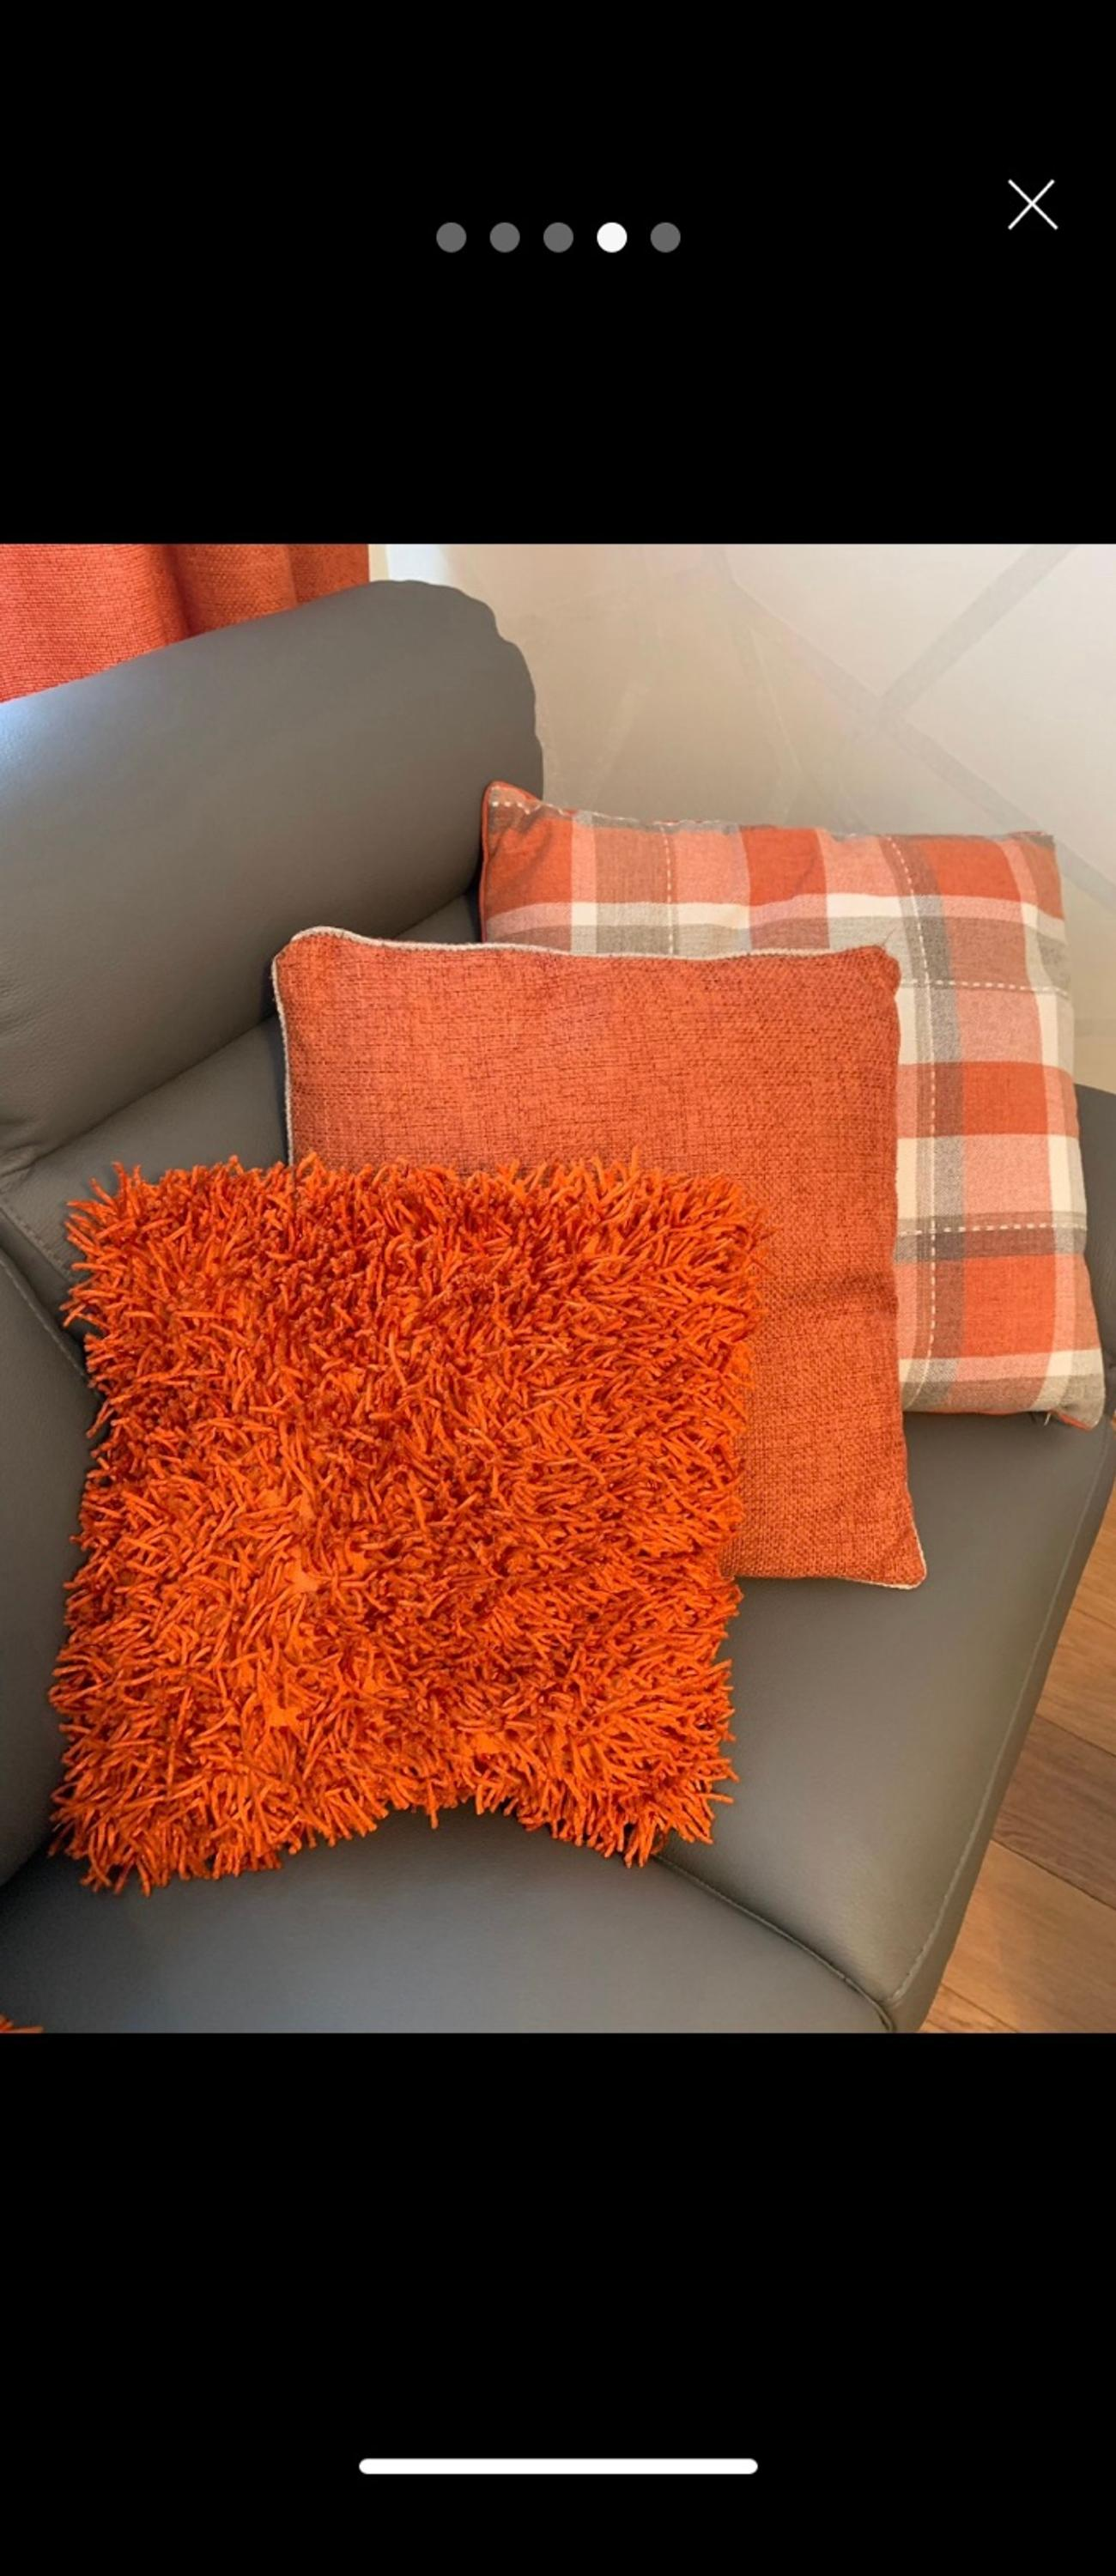 ORANGE LIVING ROOM ACCESSORIES in S35 Sheffield für 45,00 ...